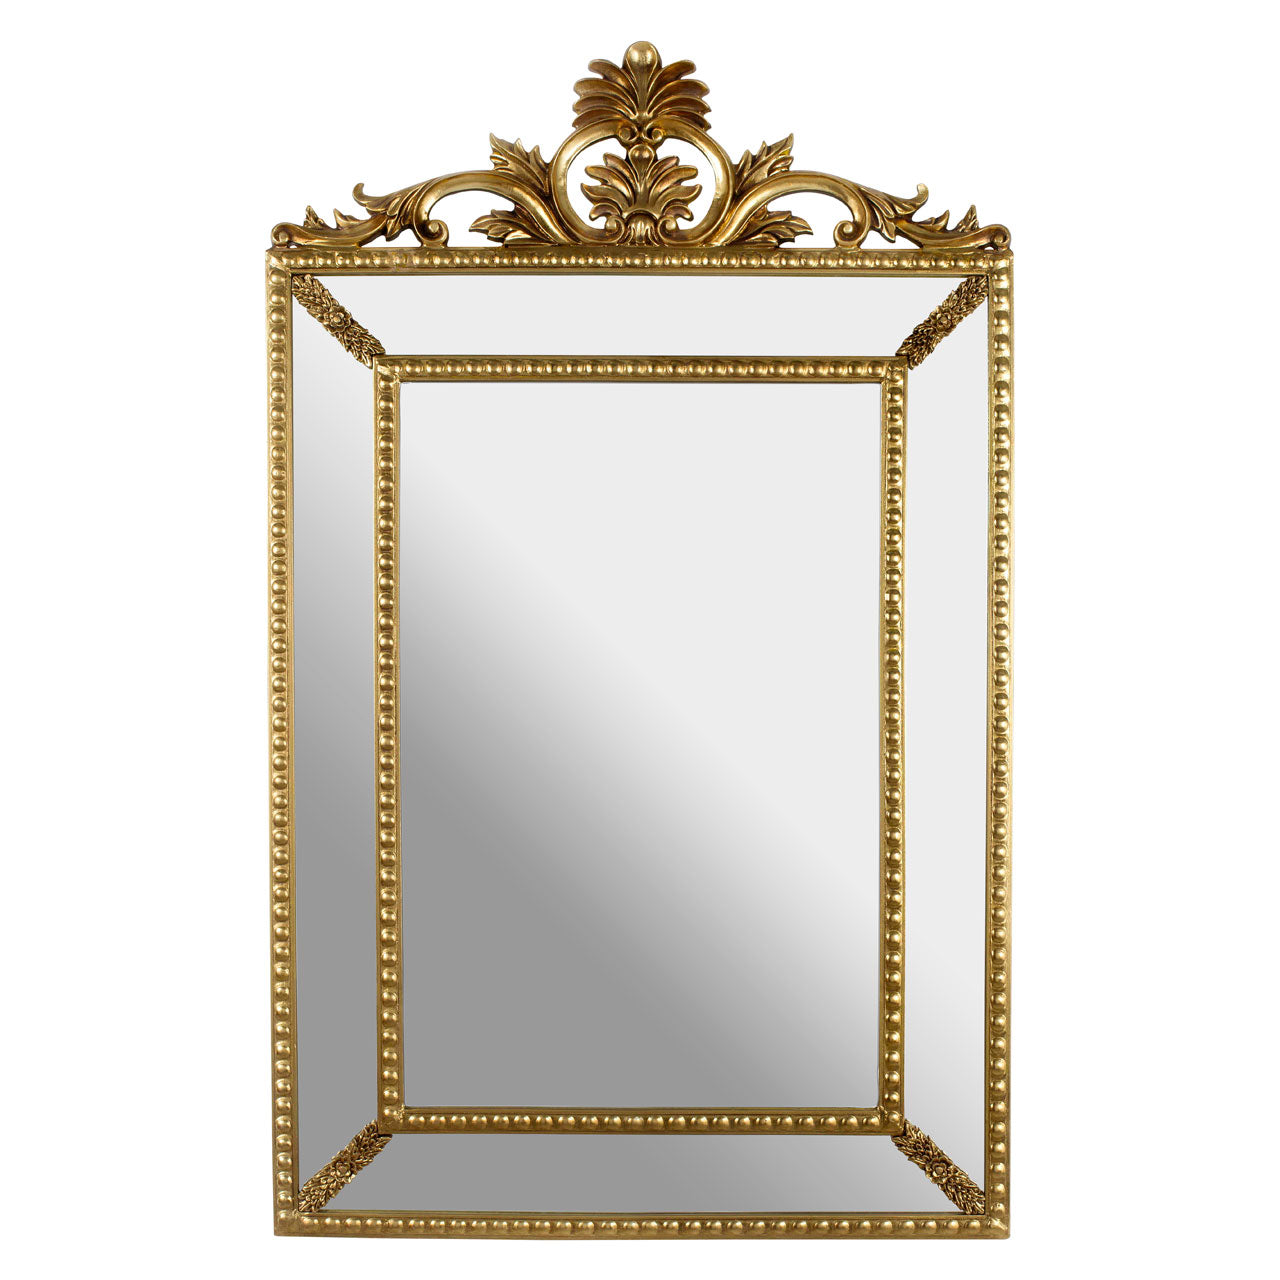 Marseille Crown Wall Mirror Gold